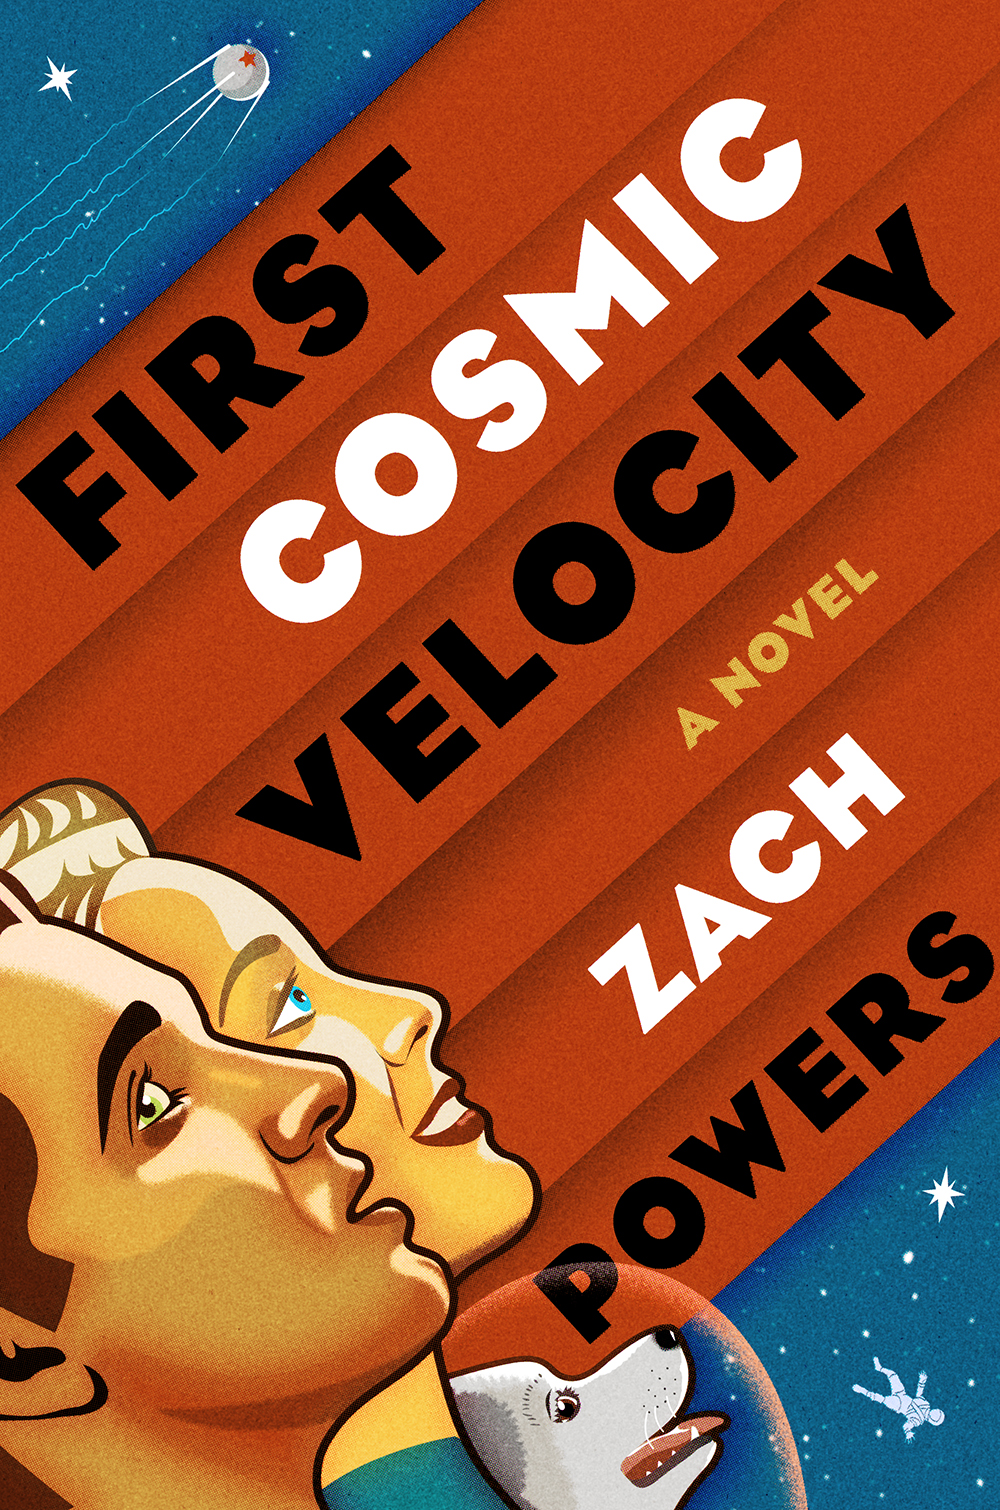 First Cosmic Velocity by Zach Powers